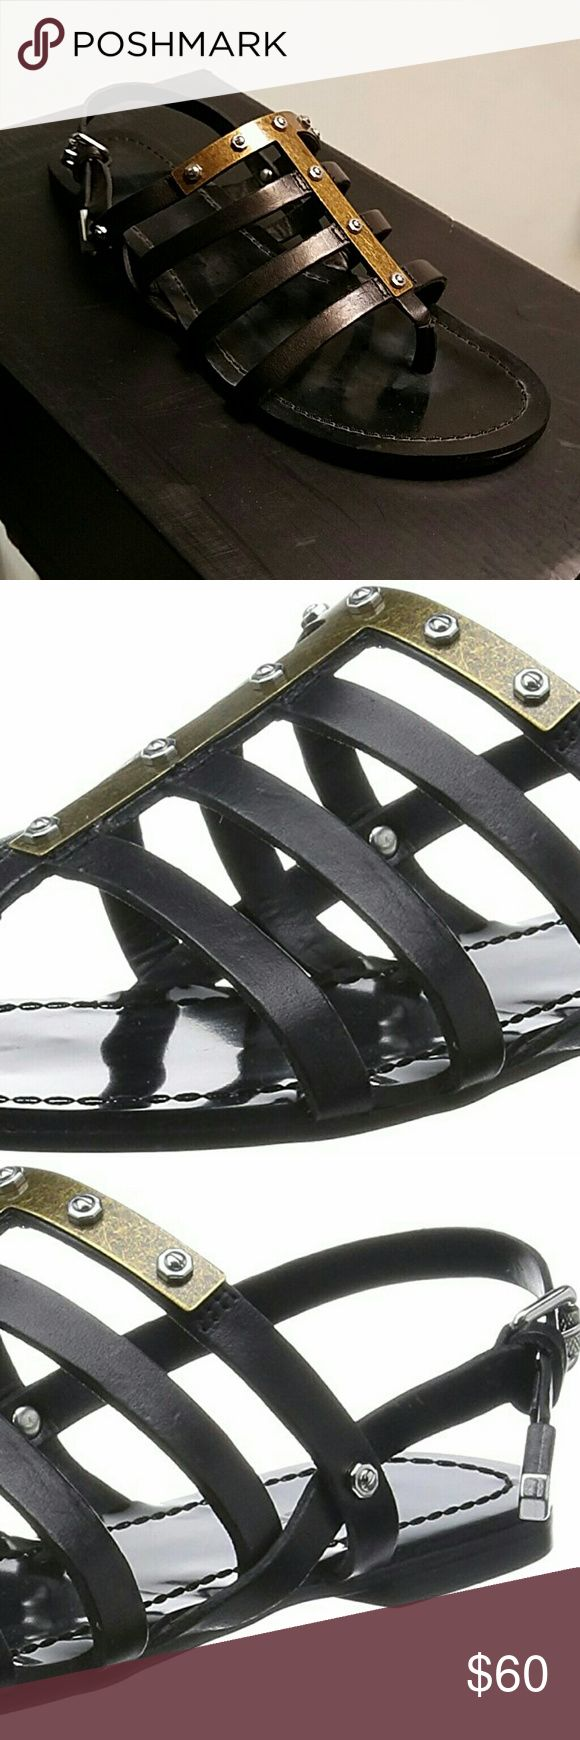 New! 60% off retail! Trendy Sandals! Leather straps // gold T-bar detail with studs! // Super edgy and chic! // other sites still selling for full price! // Diesel size 7.5 is 38 Europe// authenticity QR code on sole of shoe // New, never worn, only tried on Diesel Shoes Sandals